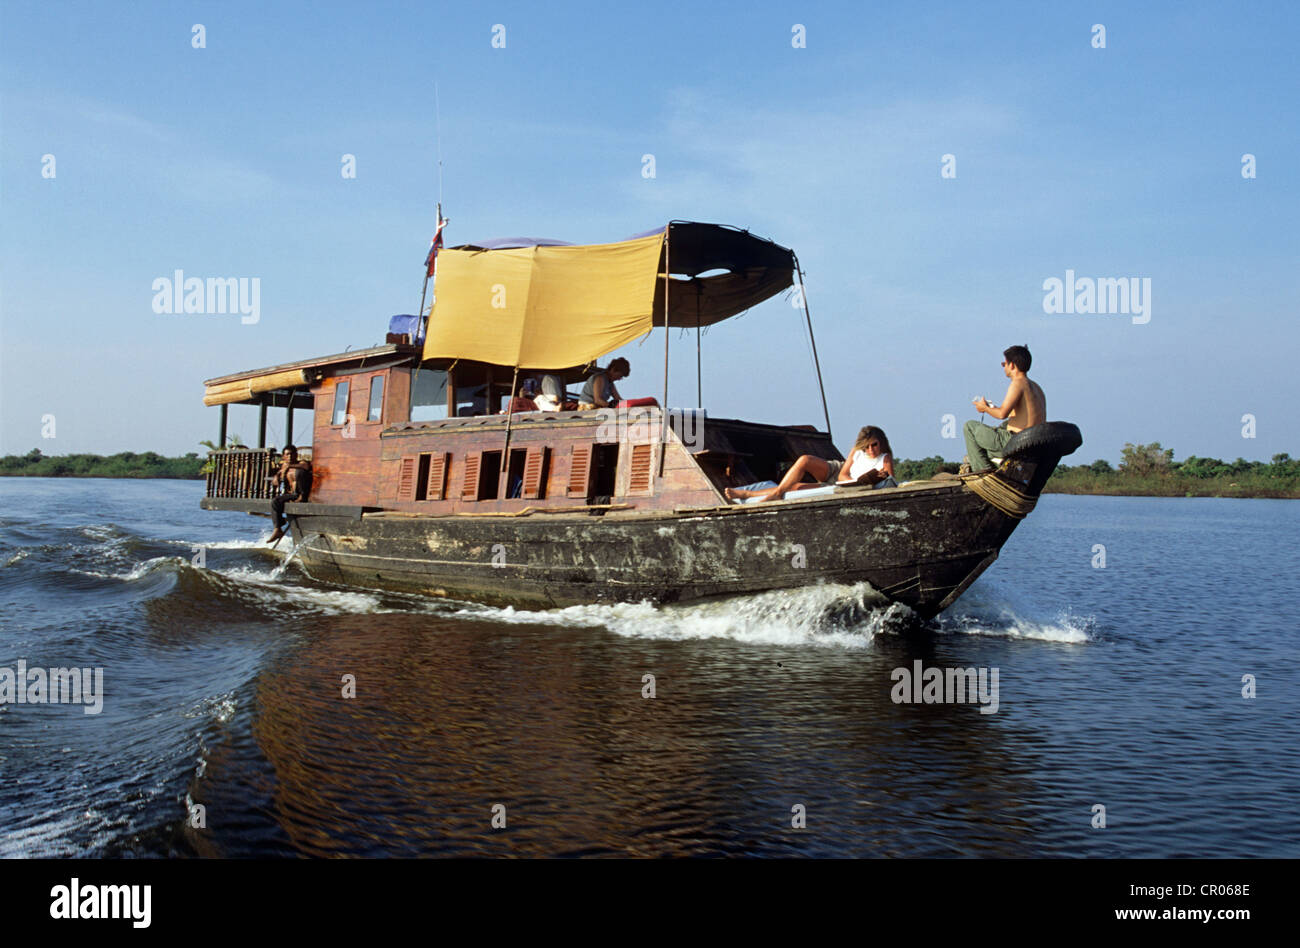 Cambodia, Siem Reap Province, cruising on the Tonle Sap Lake, Biosphere Reserve, on the boat Cambodia Earth - Stock Image